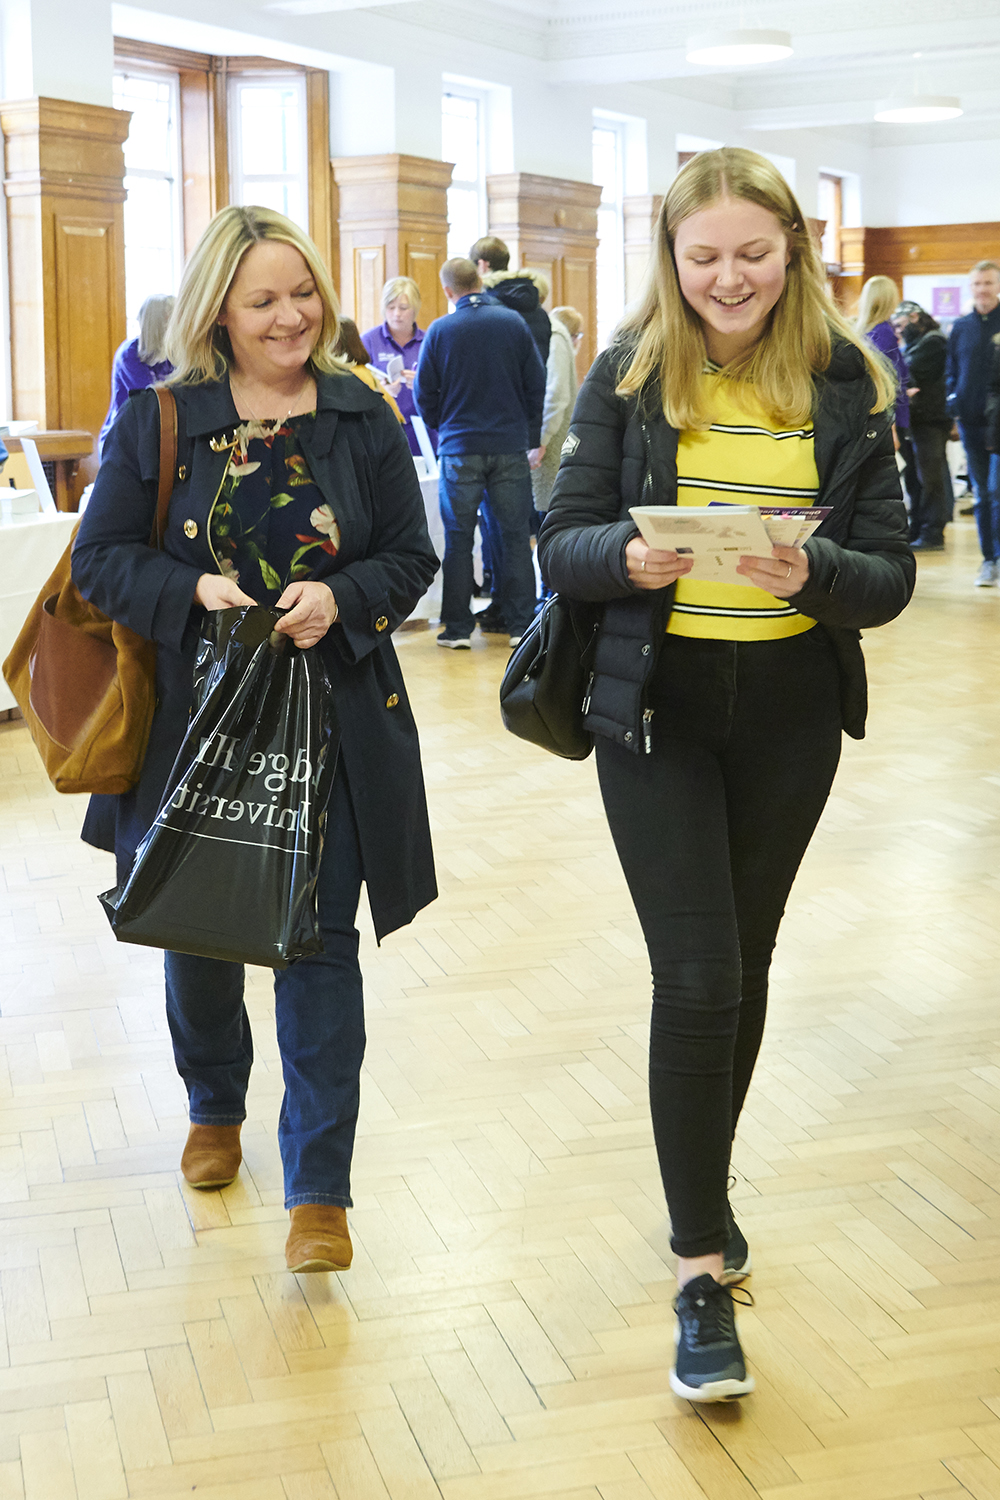 A prospective student and her mum walk through Sages Restaurant during an applicant visit day.